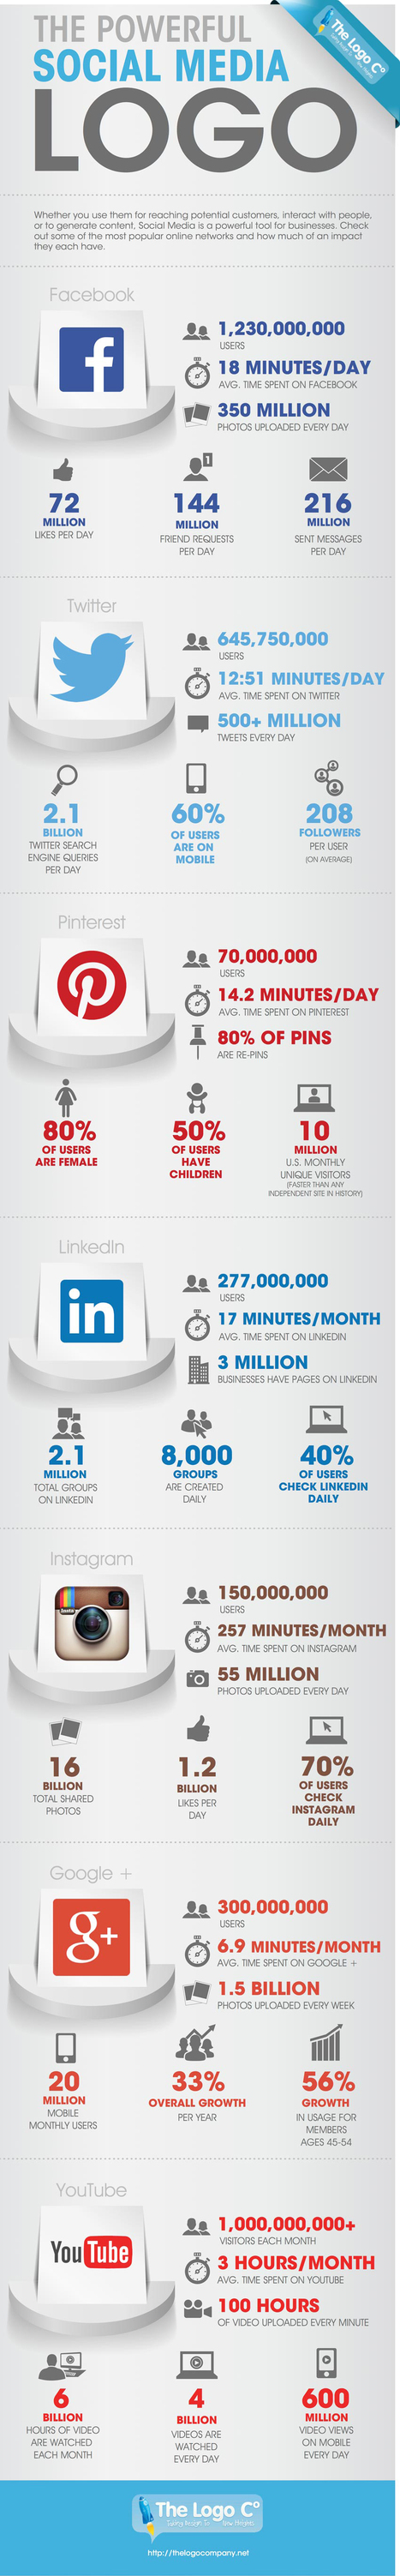 We are SOCIAL Therefore We ARE: Lies, Damn Lies & Statistics on Social Nets [Infographic] | Social Marketing Revolution | Scoop.it